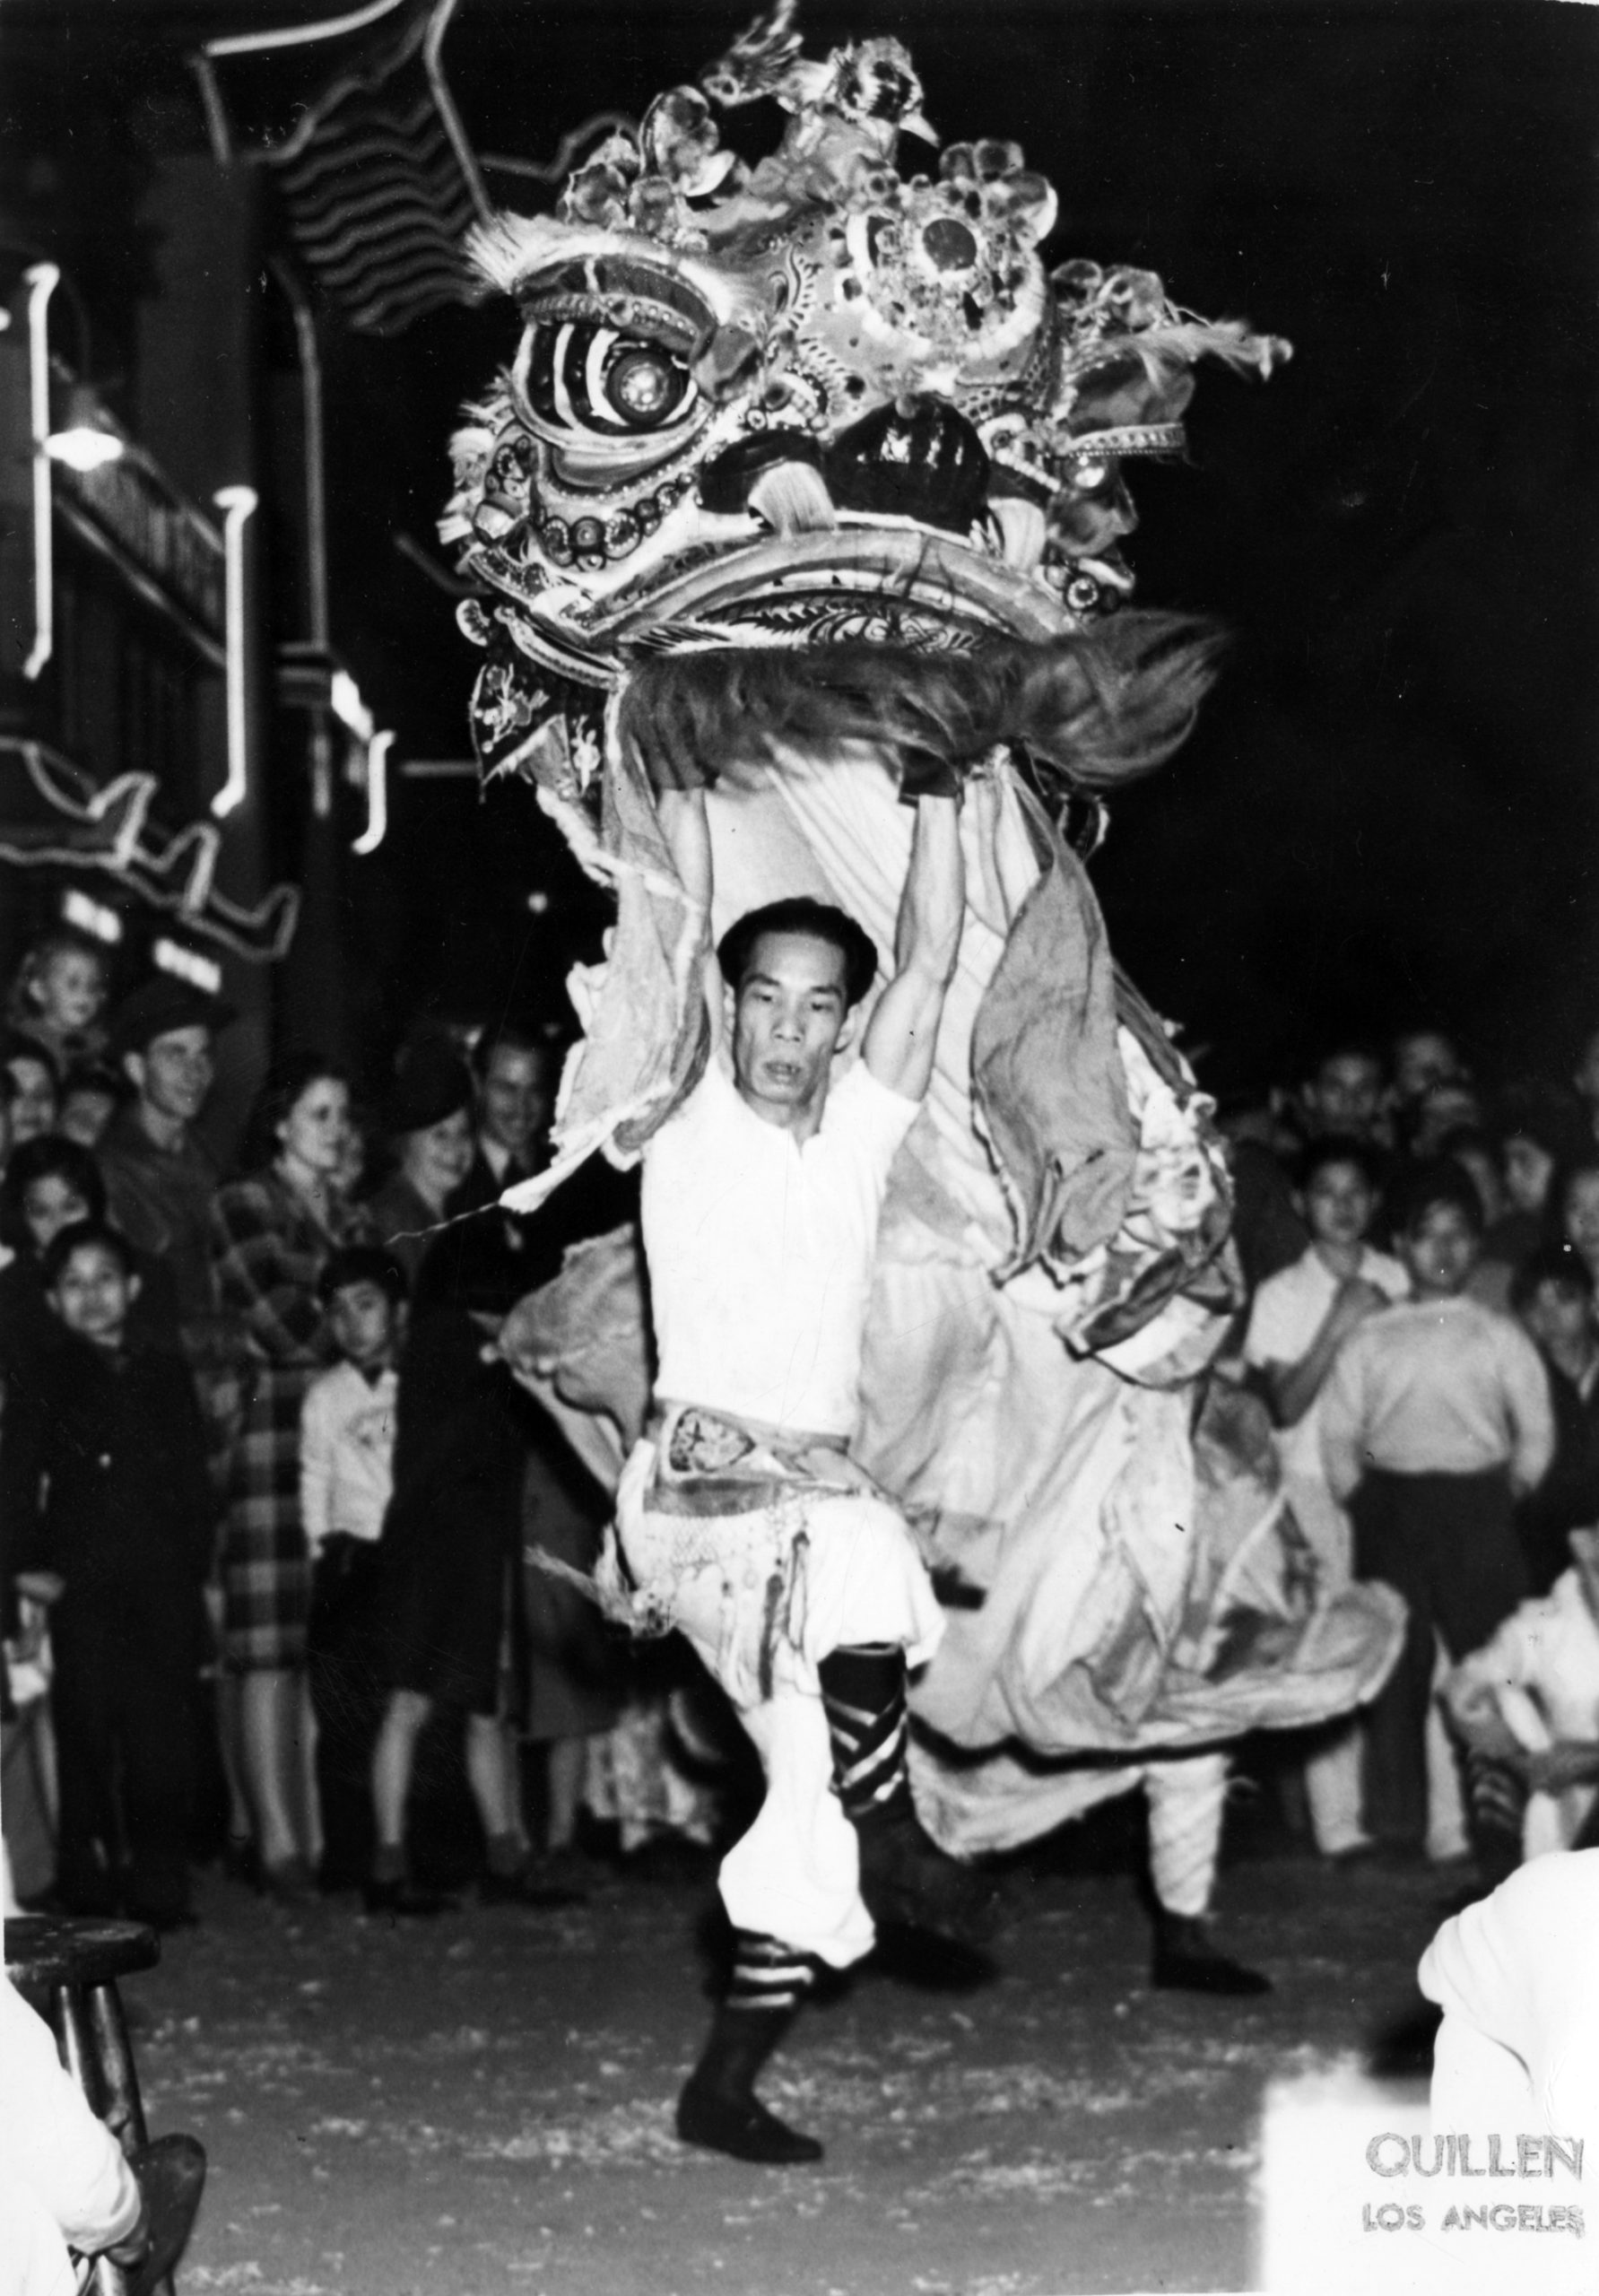 Lion dance for Chinese New Year in New Chinatown Central Plaza (1940s)